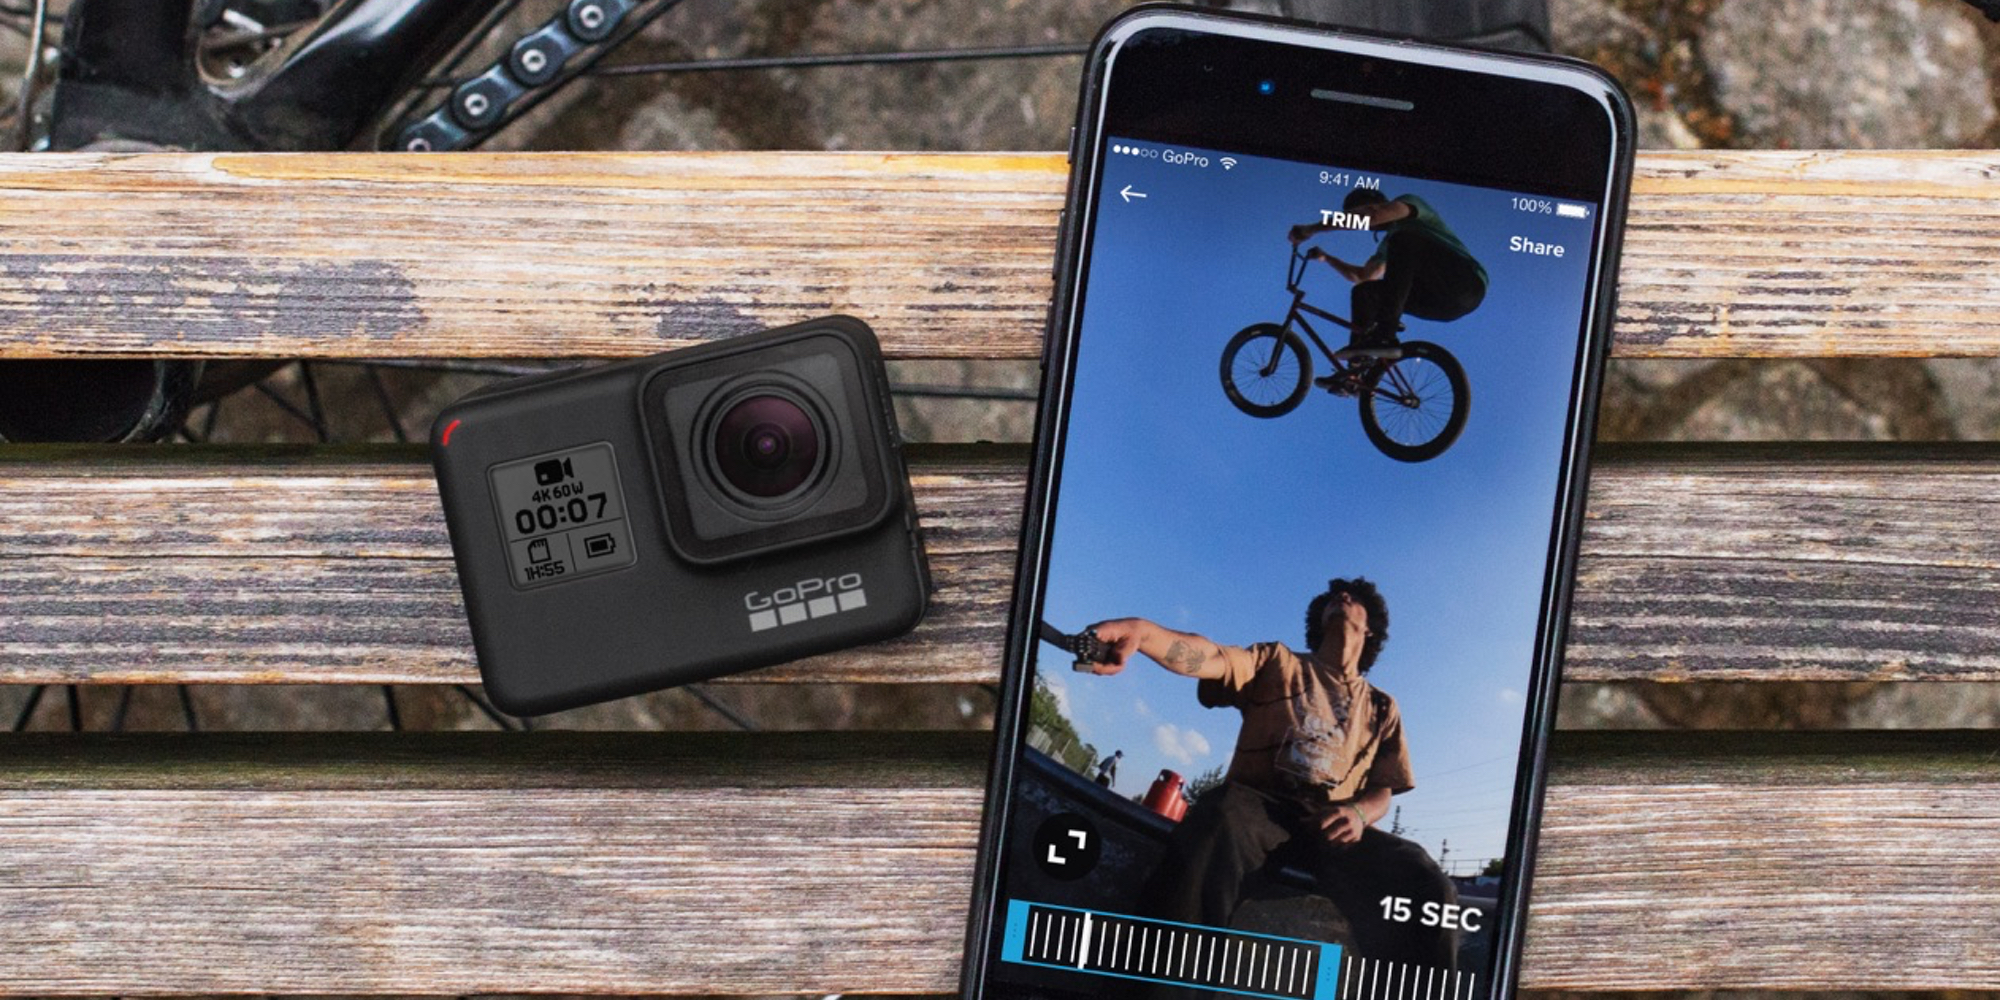 GoPro's HERO7 Black w/ SD card shoots 4K60 & has HyperSmooth stabilization: $300 ($400+ value)